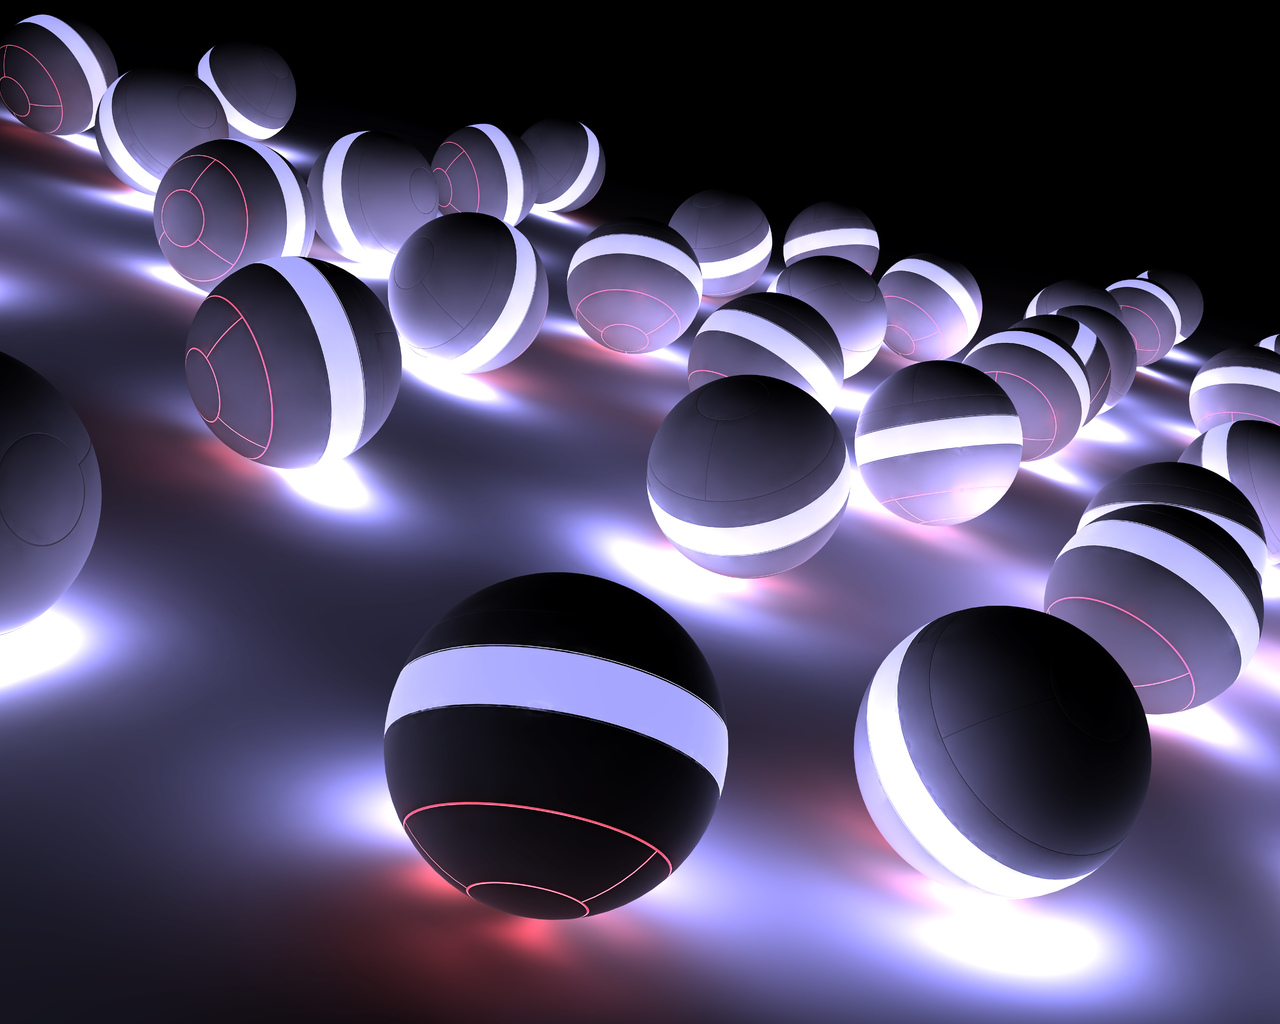 3d abstract wallpaper